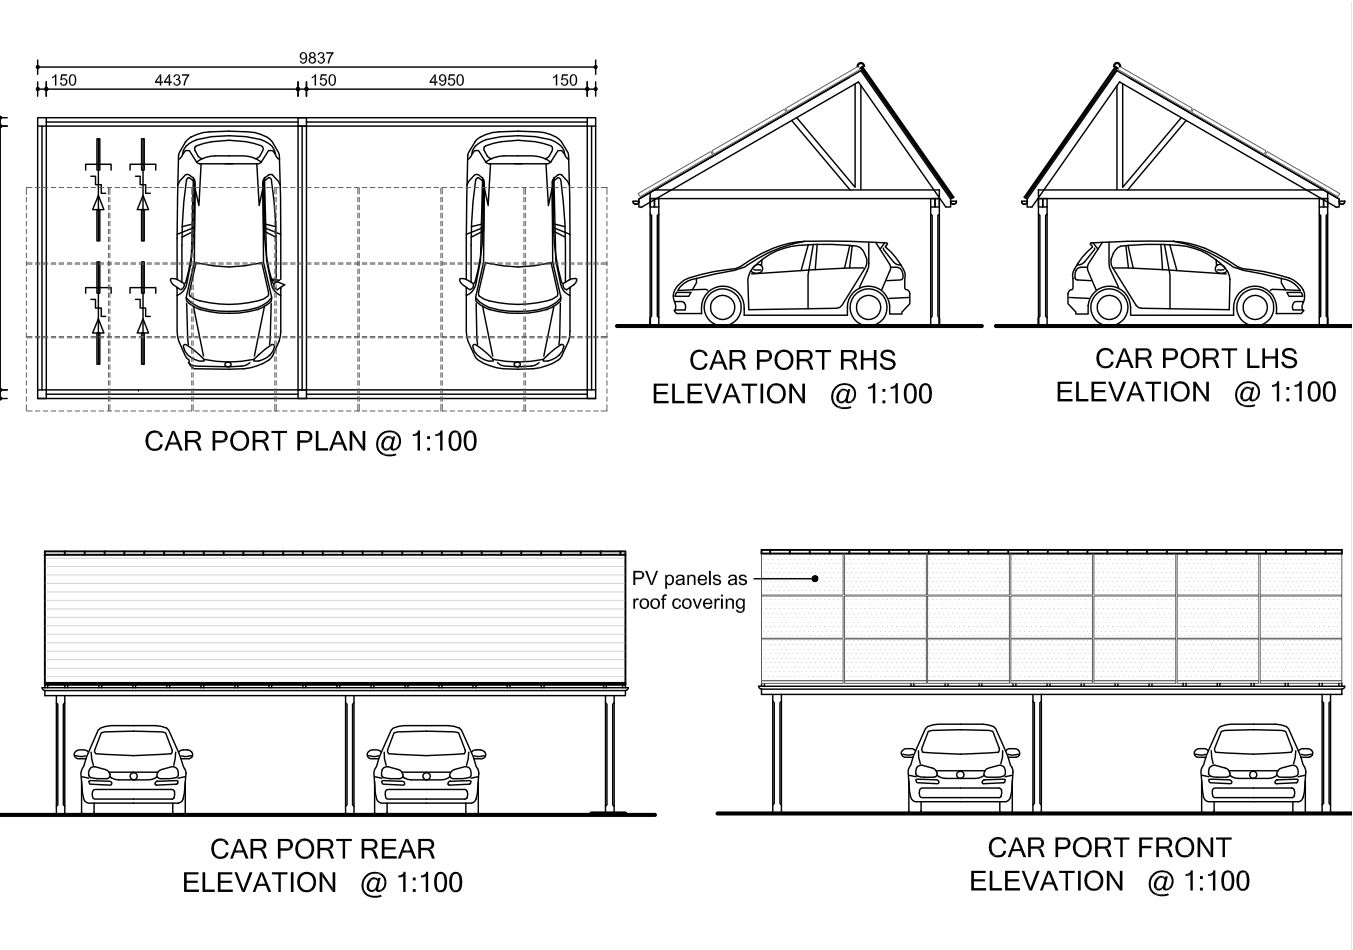 plans carport. Plans carport free | Tiny house ideas | Pinterest ...